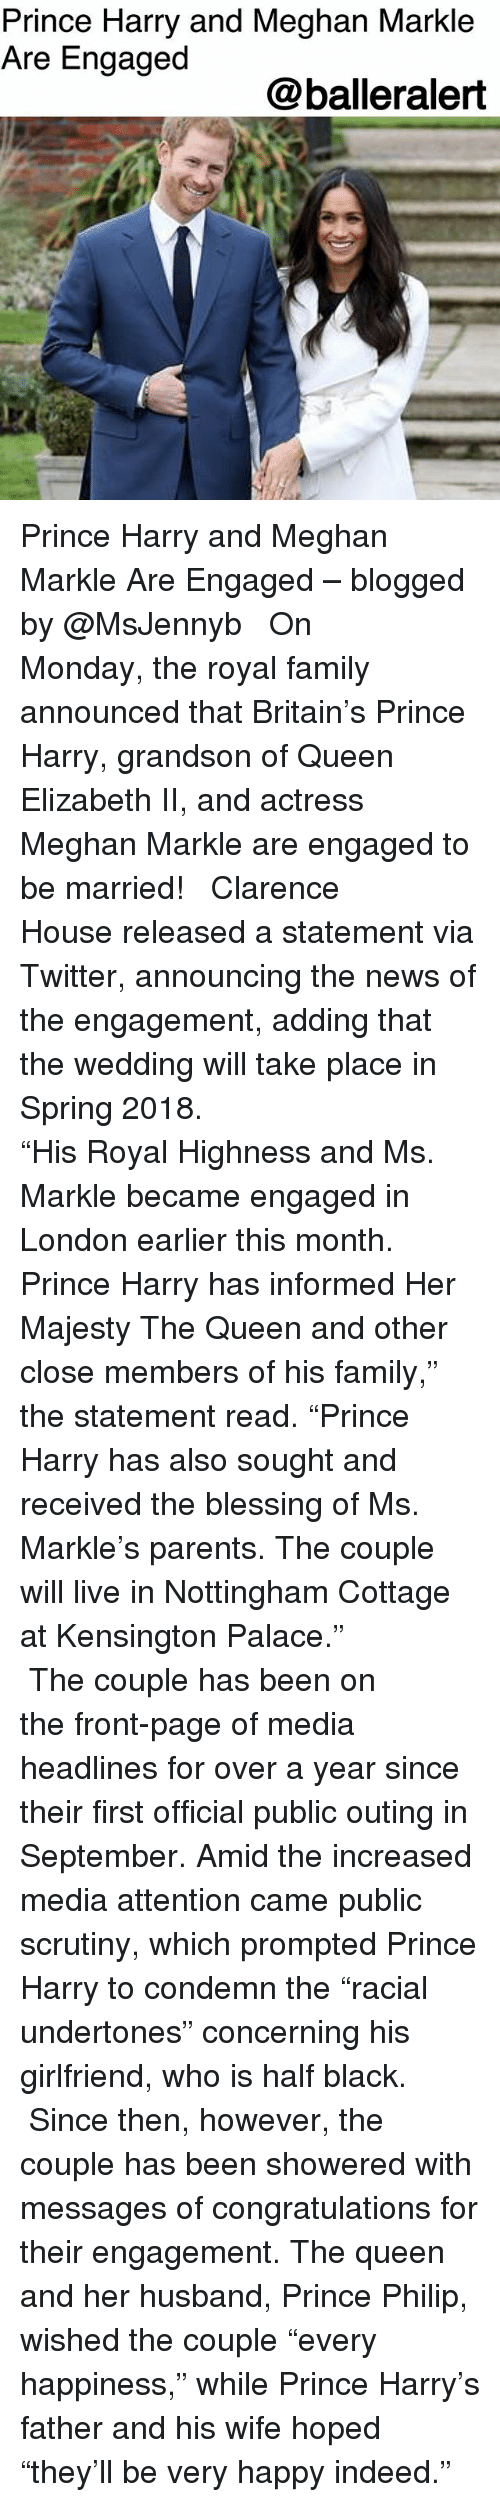 "highness: Prince Harry and Meghan Markle  Are Engaged  @balleralert Prince Harry and Meghan Markle Are Engaged – blogged by @MsJennyb ⠀⠀⠀⠀⠀⠀⠀ ⠀⠀⠀⠀⠀⠀⠀ On Monday, the royal family announced that Britain's Prince Harry, grandson of Queen Elizabeth II, and actress Meghan Markle are engaged to be married! ⠀⠀⠀⠀⠀⠀⠀ ⠀⠀⠀⠀⠀⠀⠀ Clarence House released a statement via Twitter, announcing the news of the engagement, adding that the wedding will take place in Spring 2018. ⠀⠀⠀⠀⠀⠀⠀ ⠀⠀⠀⠀⠀⠀⠀ ⠀⠀⠀⠀⠀⠀⠀ ""His Royal Highness and Ms. Markle became engaged in London earlier this month. Prince Harry has informed Her Majesty The Queen and other close members of his family,"" the statement read. ""Prince Harry has also sought and received the blessing of Ms. Markle's parents. The couple will live in Nottingham Cottage at Kensington Palace."" ⠀⠀⠀⠀⠀⠀⠀ ⠀⠀⠀⠀⠀⠀⠀ The couple has been on the front-page of media headlines for over a year since their first official public outing in September. Amid the increased media attention came public scrutiny, which prompted Prince Harry to condemn the ""racial undertones"" concerning his girlfriend, who is half black. ⠀⠀⠀⠀⠀⠀⠀ ⠀⠀⠀⠀⠀⠀⠀ Since then, however, the couple has been showered with messages of congratulations for their engagement. The queen and her husband, Prince Philip, wished the couple ""every happiness,"" while Prince Harry's father and his wife hoped ""they'll be very happy indeed."""